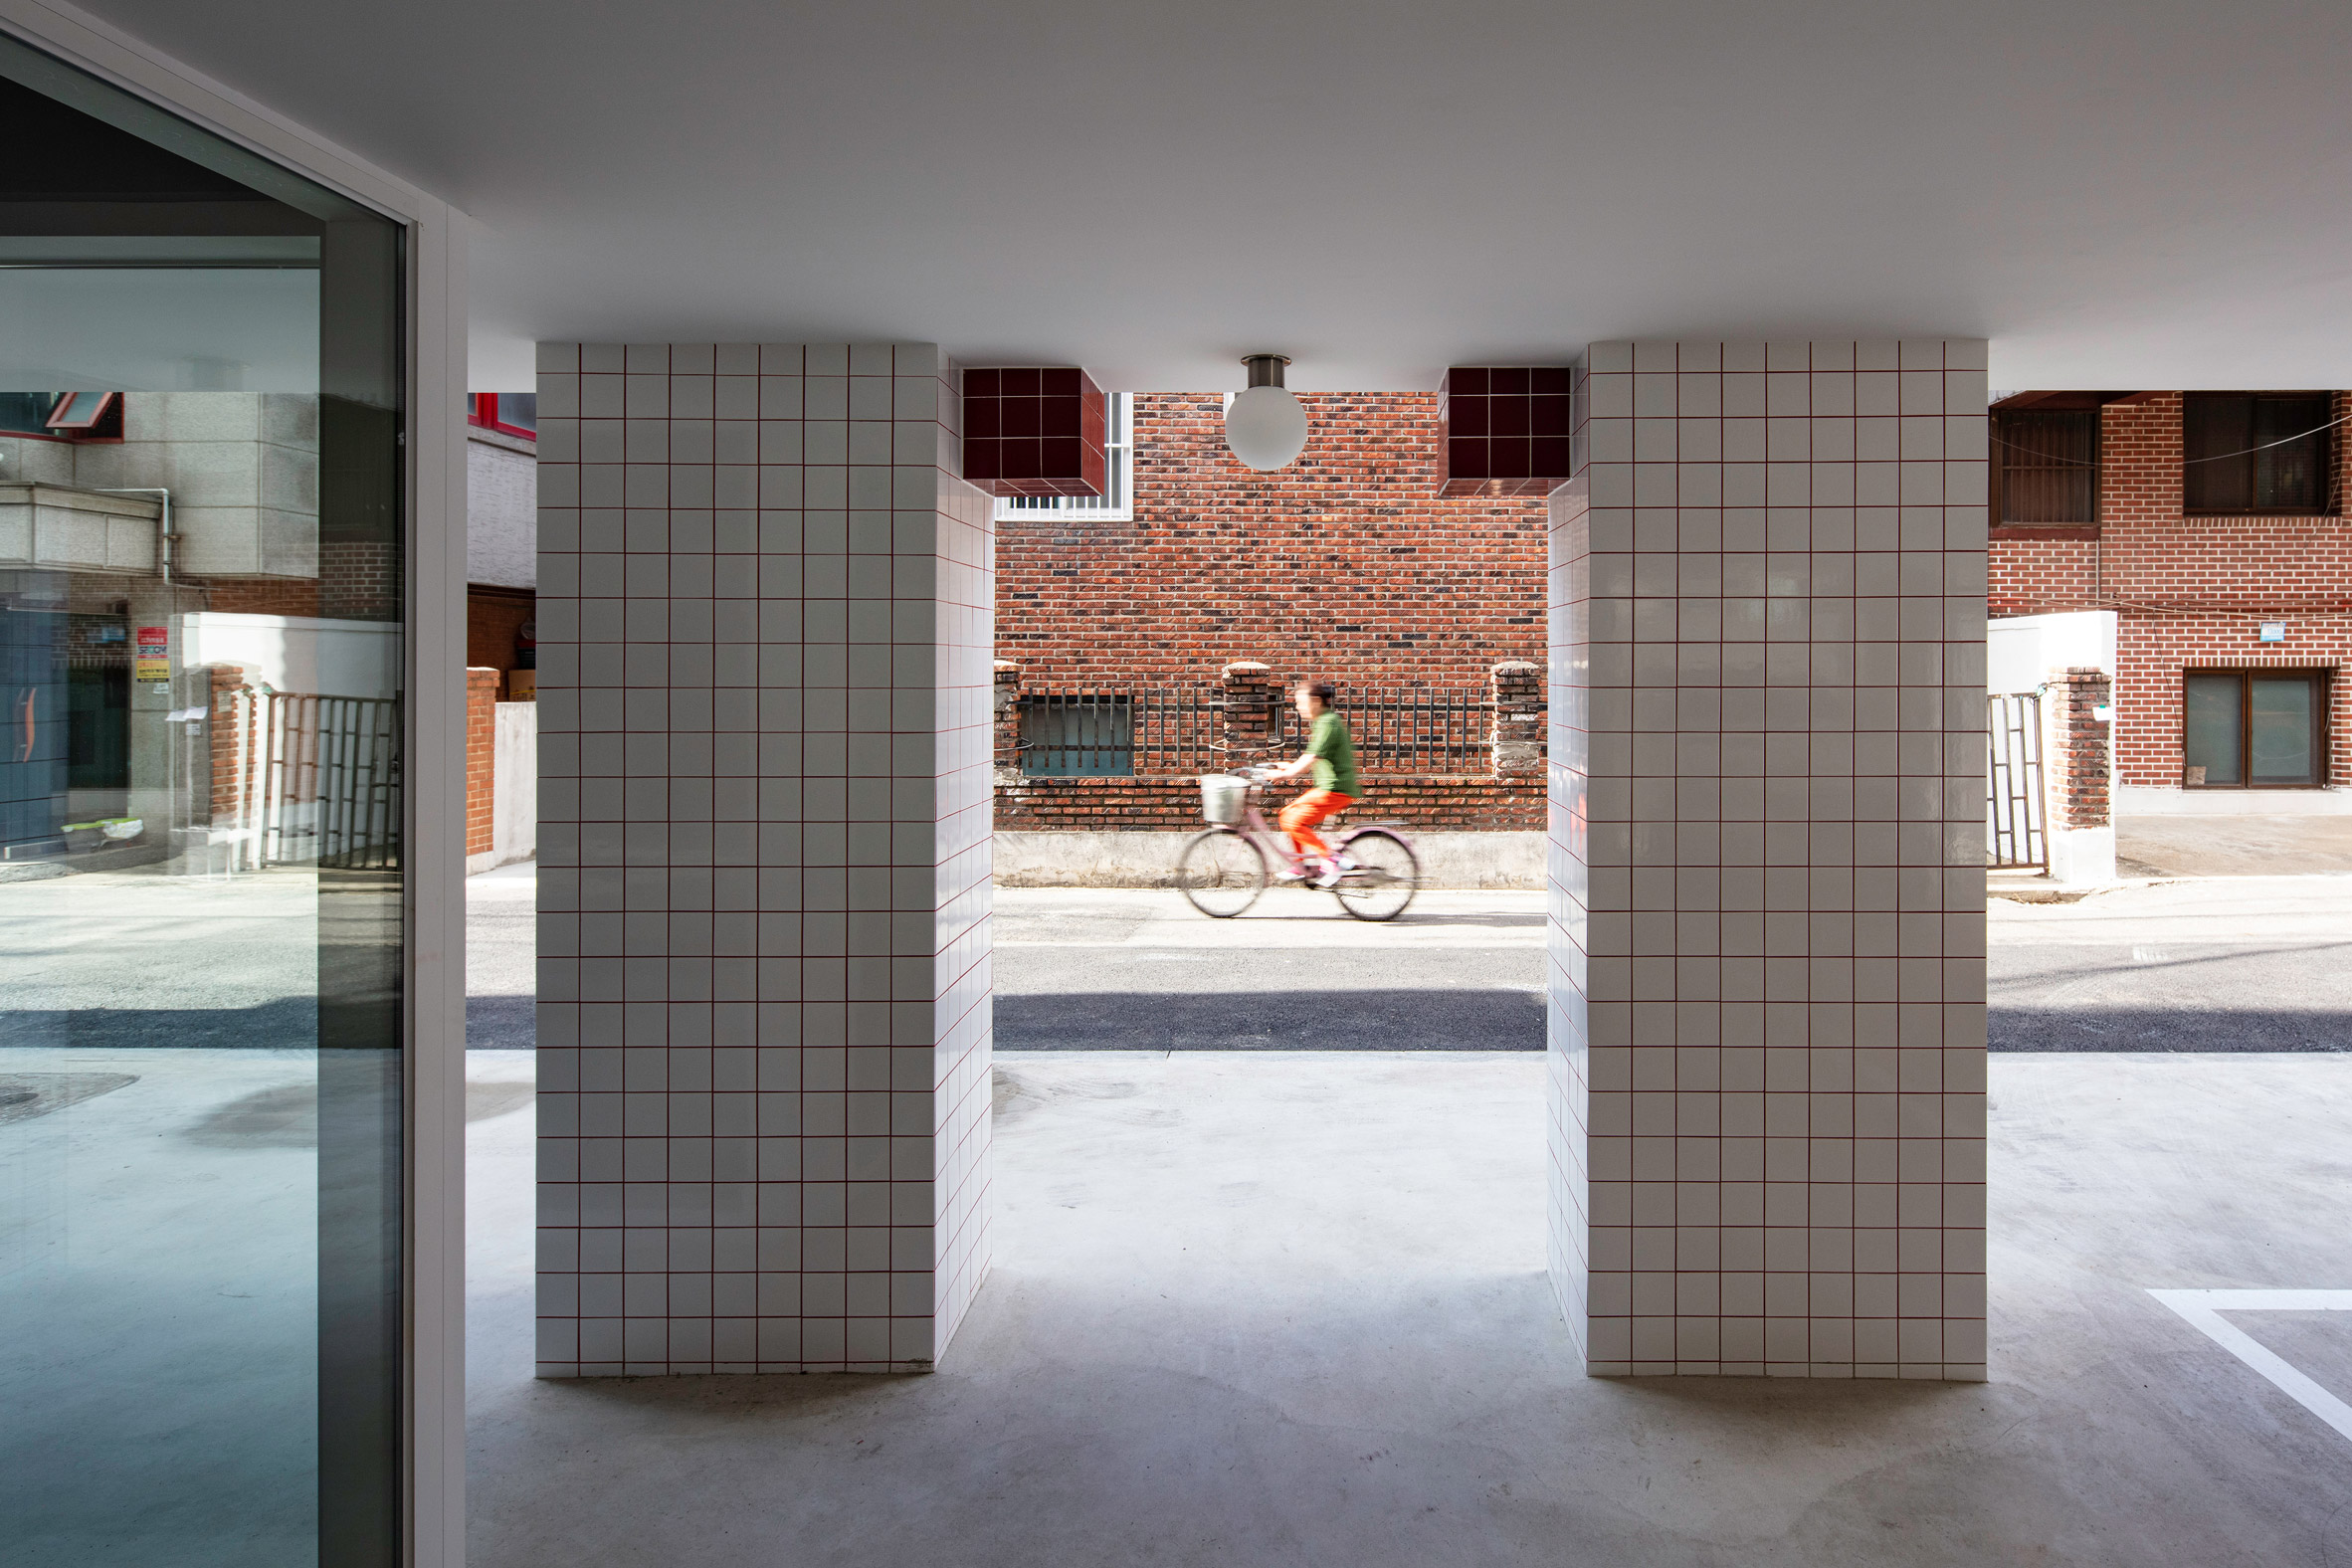 Aoa Architects Clads Minecraft Themed Apartments With Pixel Like Tiles